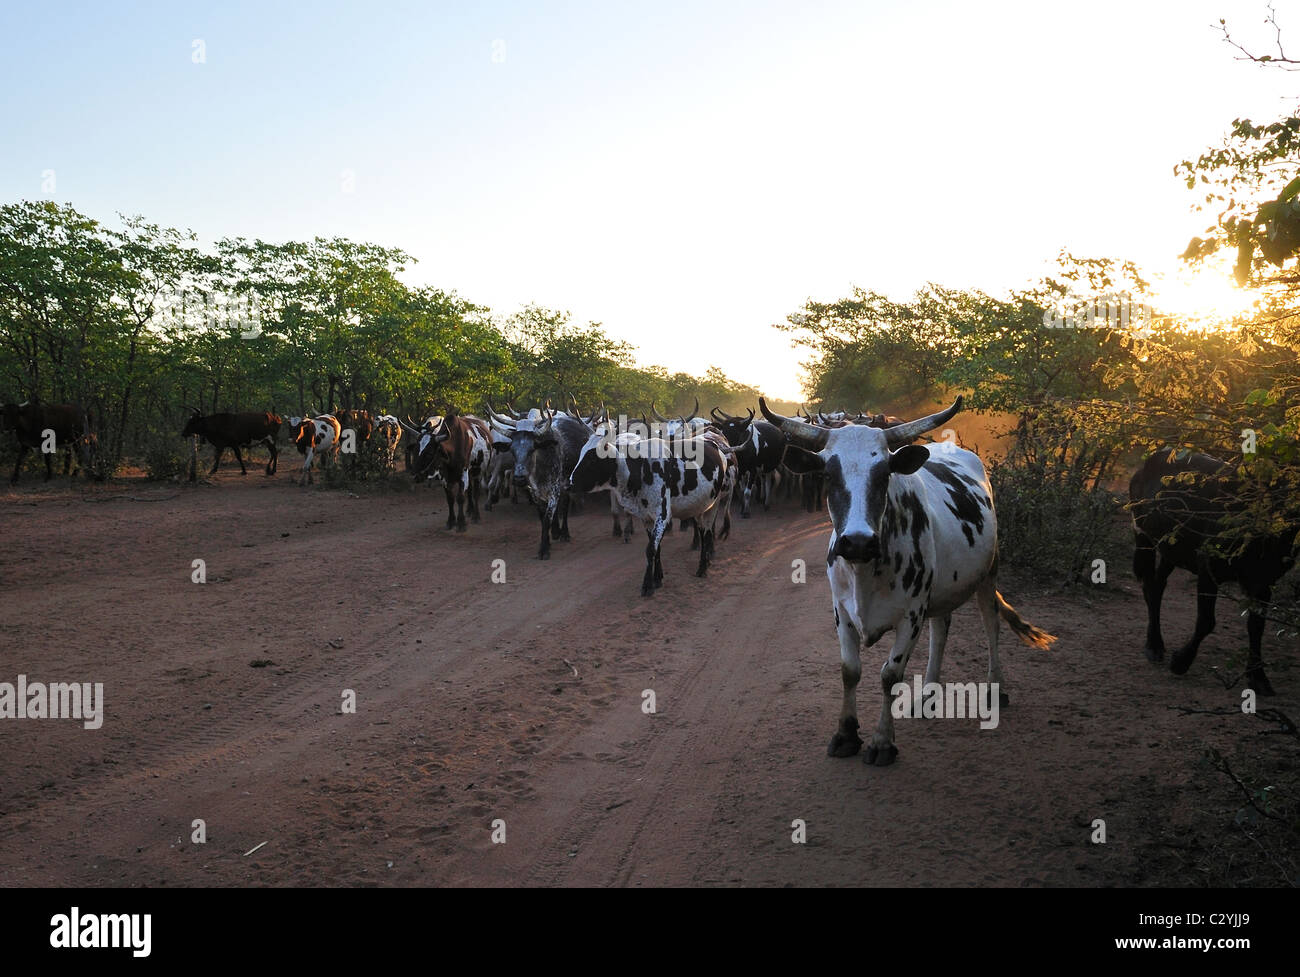 Nguni cattle on road to cattle kraal in Mavodze Village in Limpopo National Park, Mozambique - Stock Image